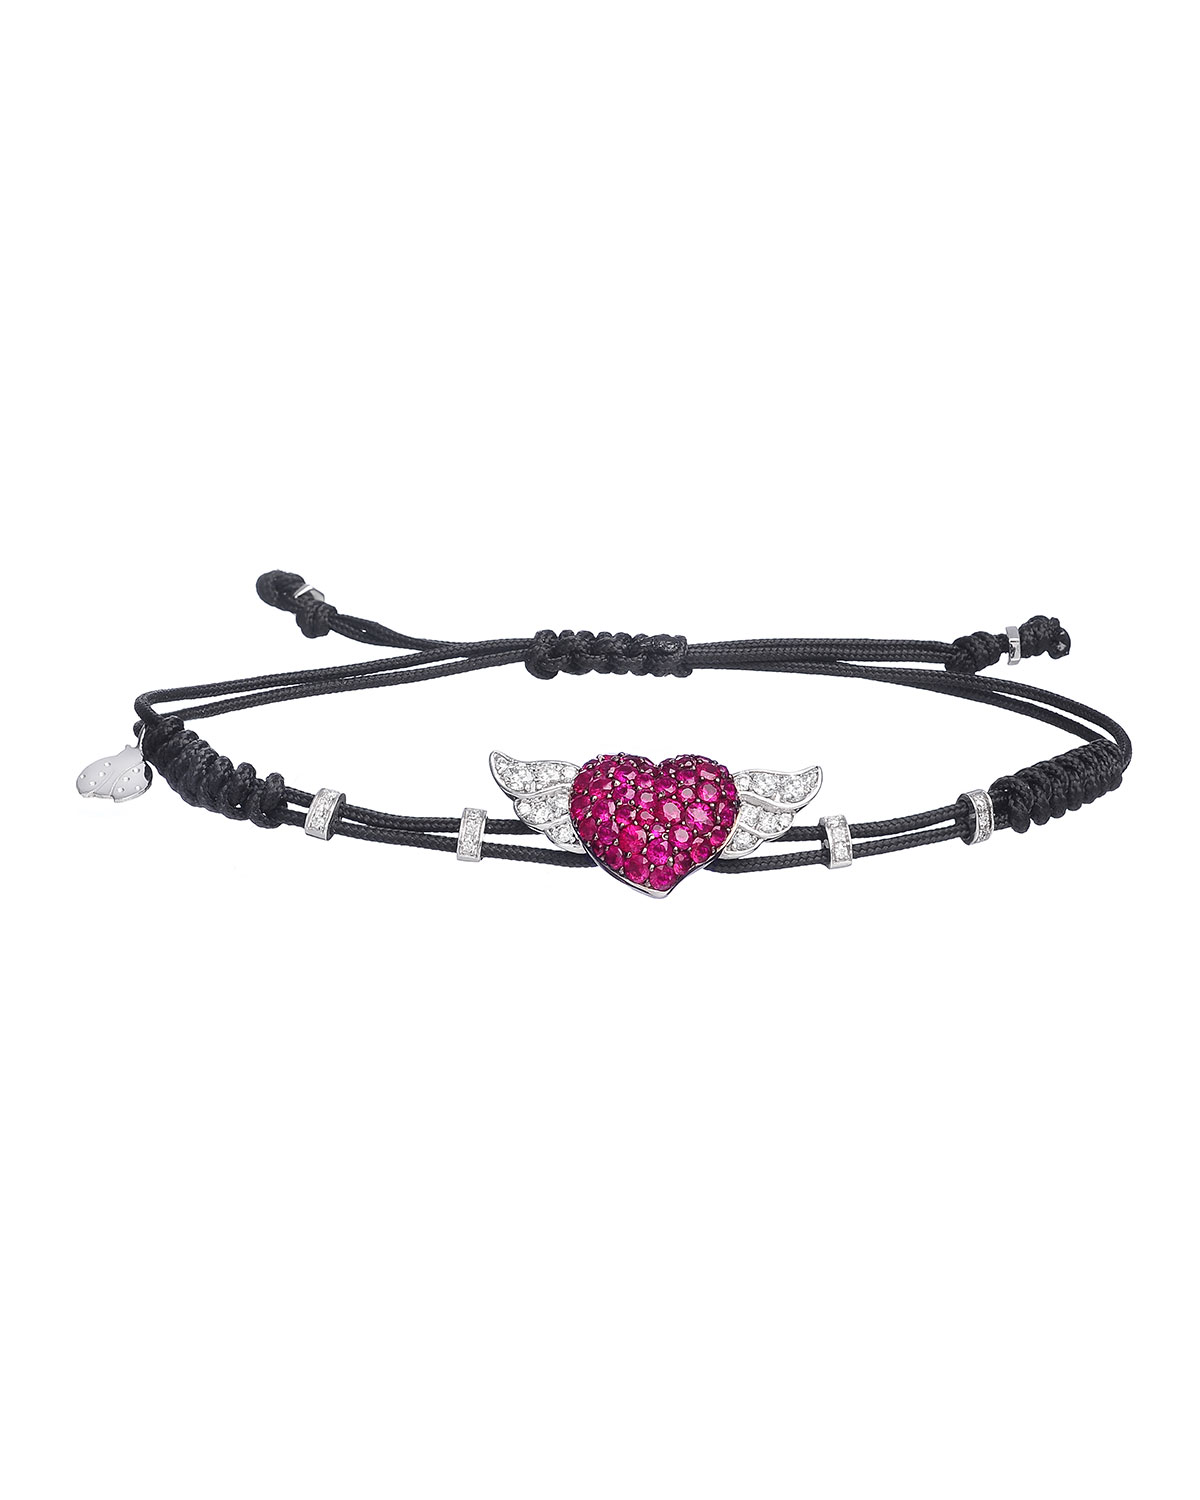 Pippo Perez 18k Diamond & Ruby Winged Heart Pull-Cord Bracelet